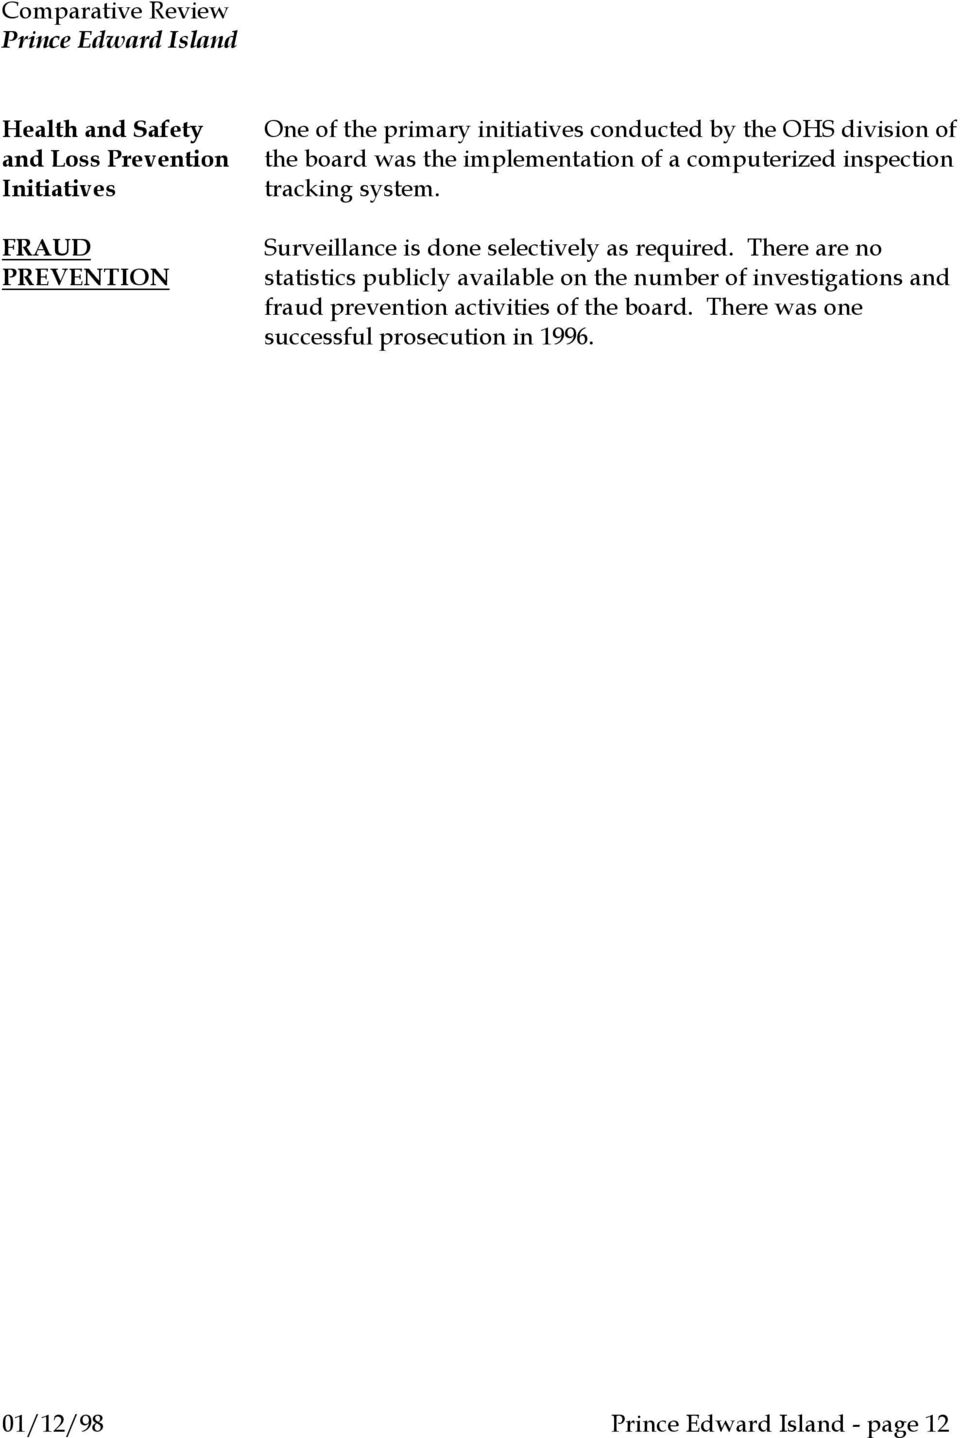 Surveillance is done selectively as required.